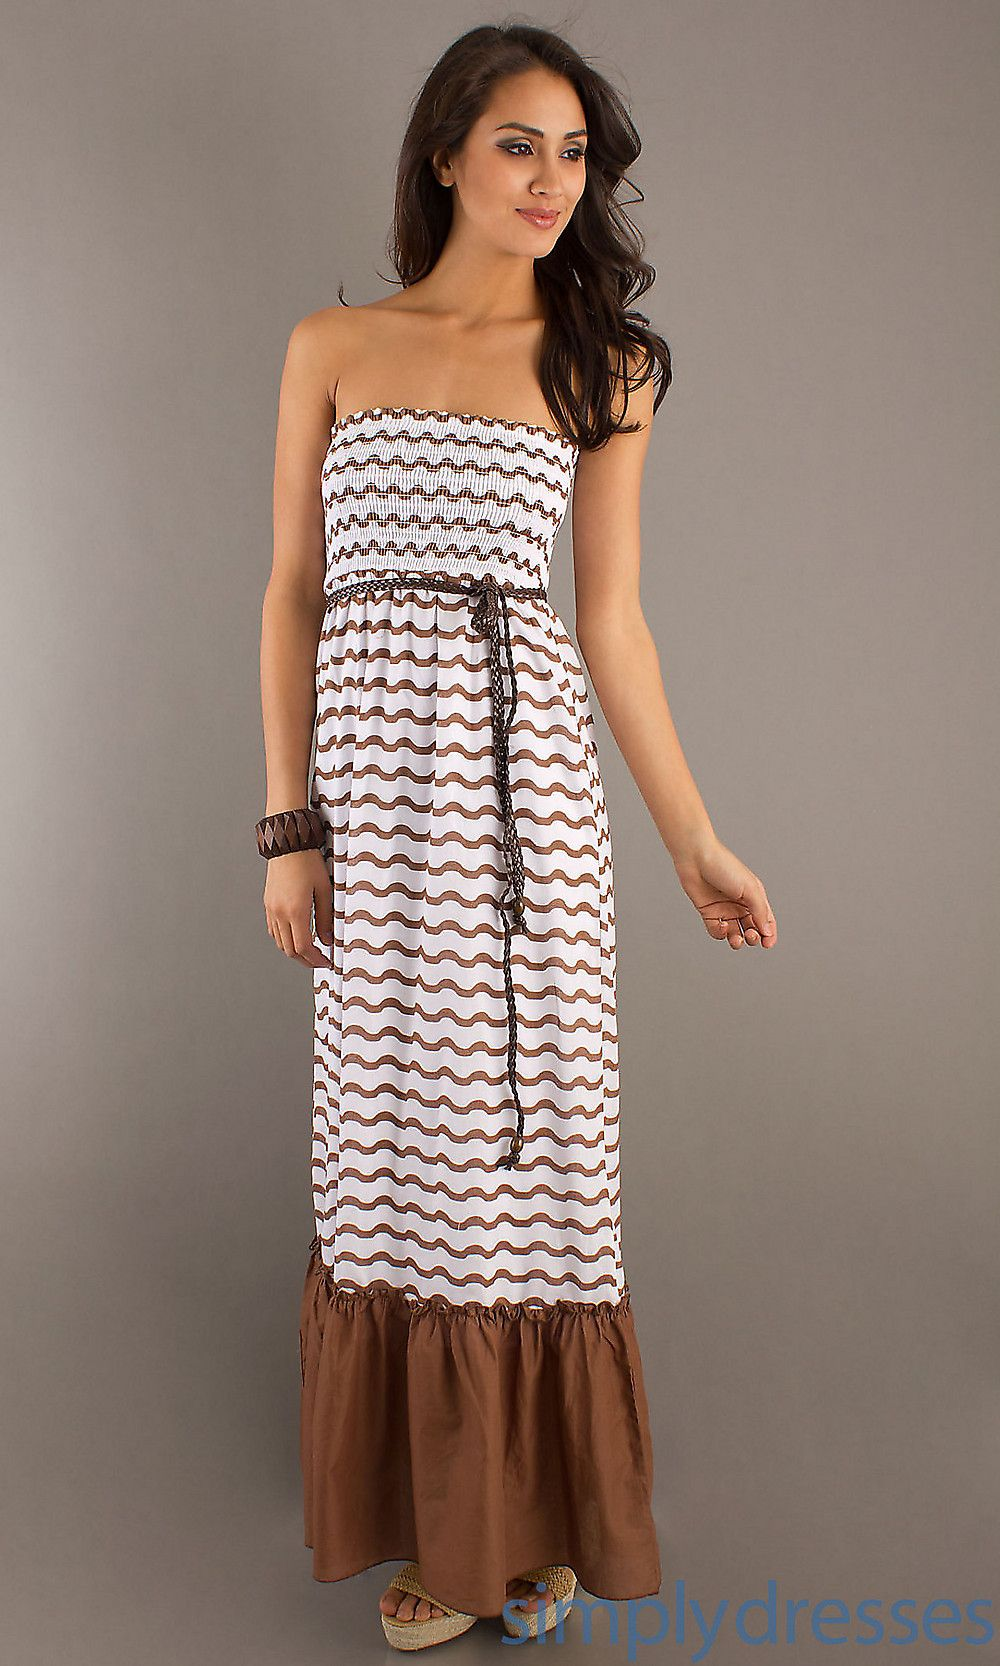 Dress long strapless casual dress simply dresses i want